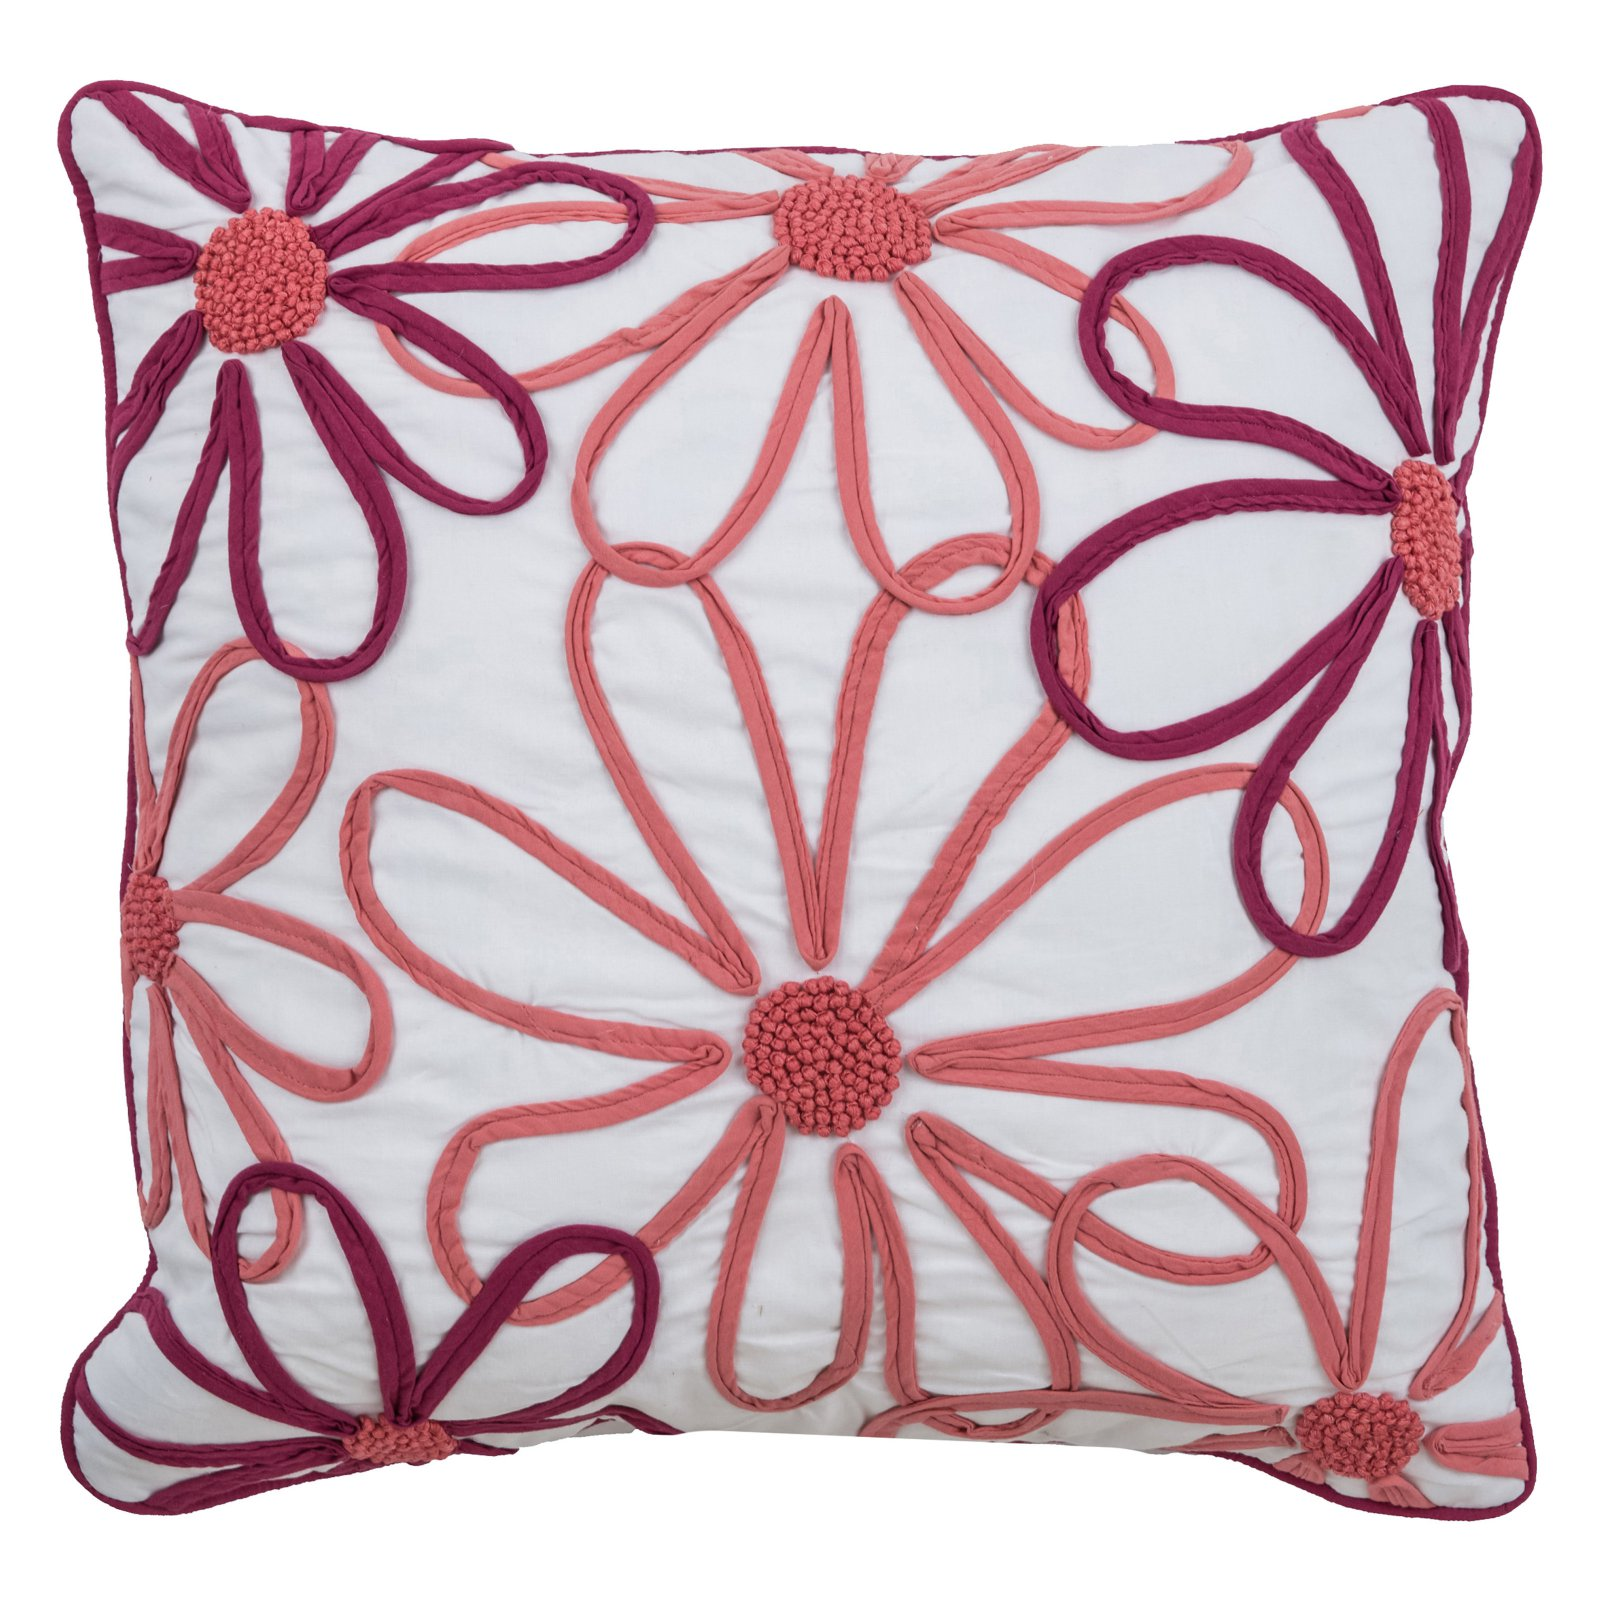 "Rizzy Home Decorative Poly Filled Throw Pillow Floral 18""X18"" Pink"